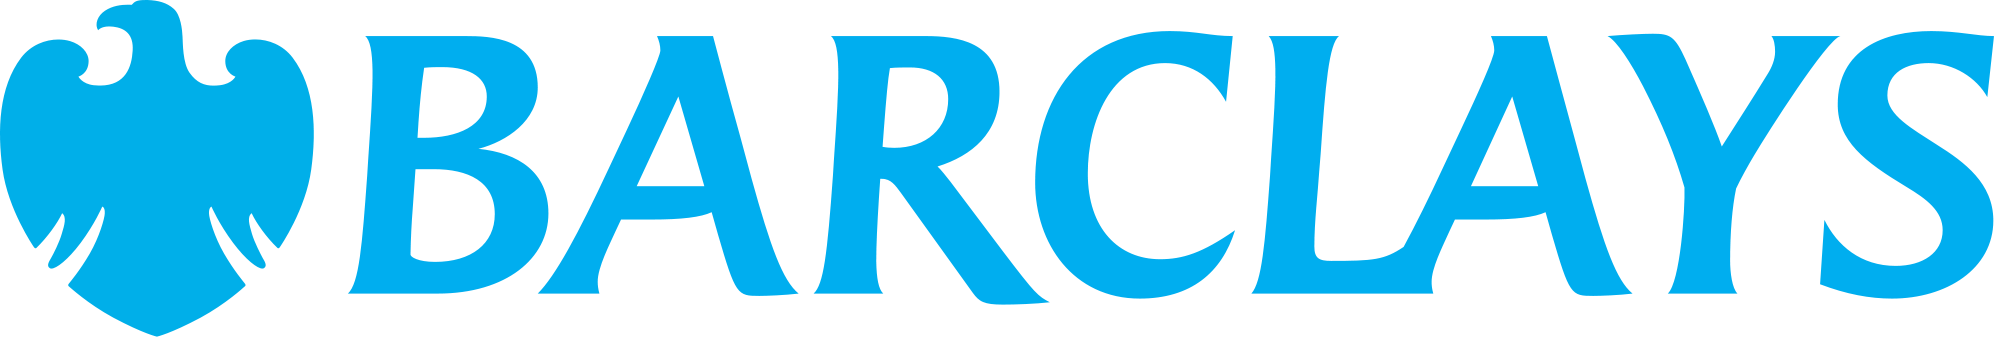 Barclays PNG - 110568